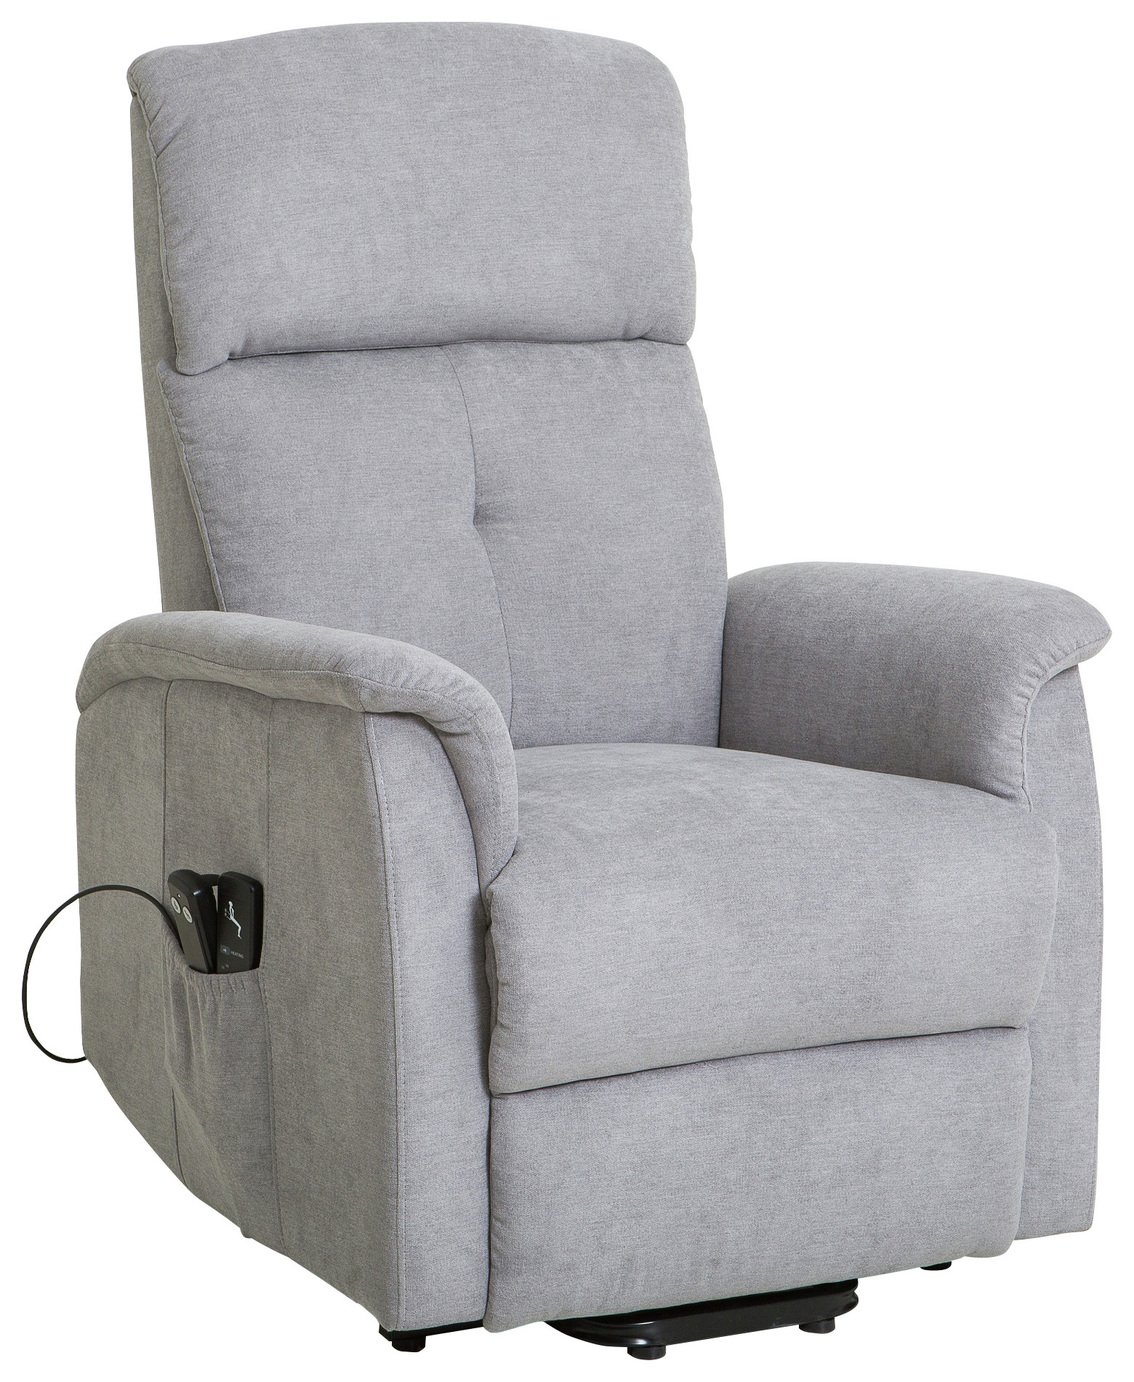 Margo Riser Recliner Heated Chair - Grey